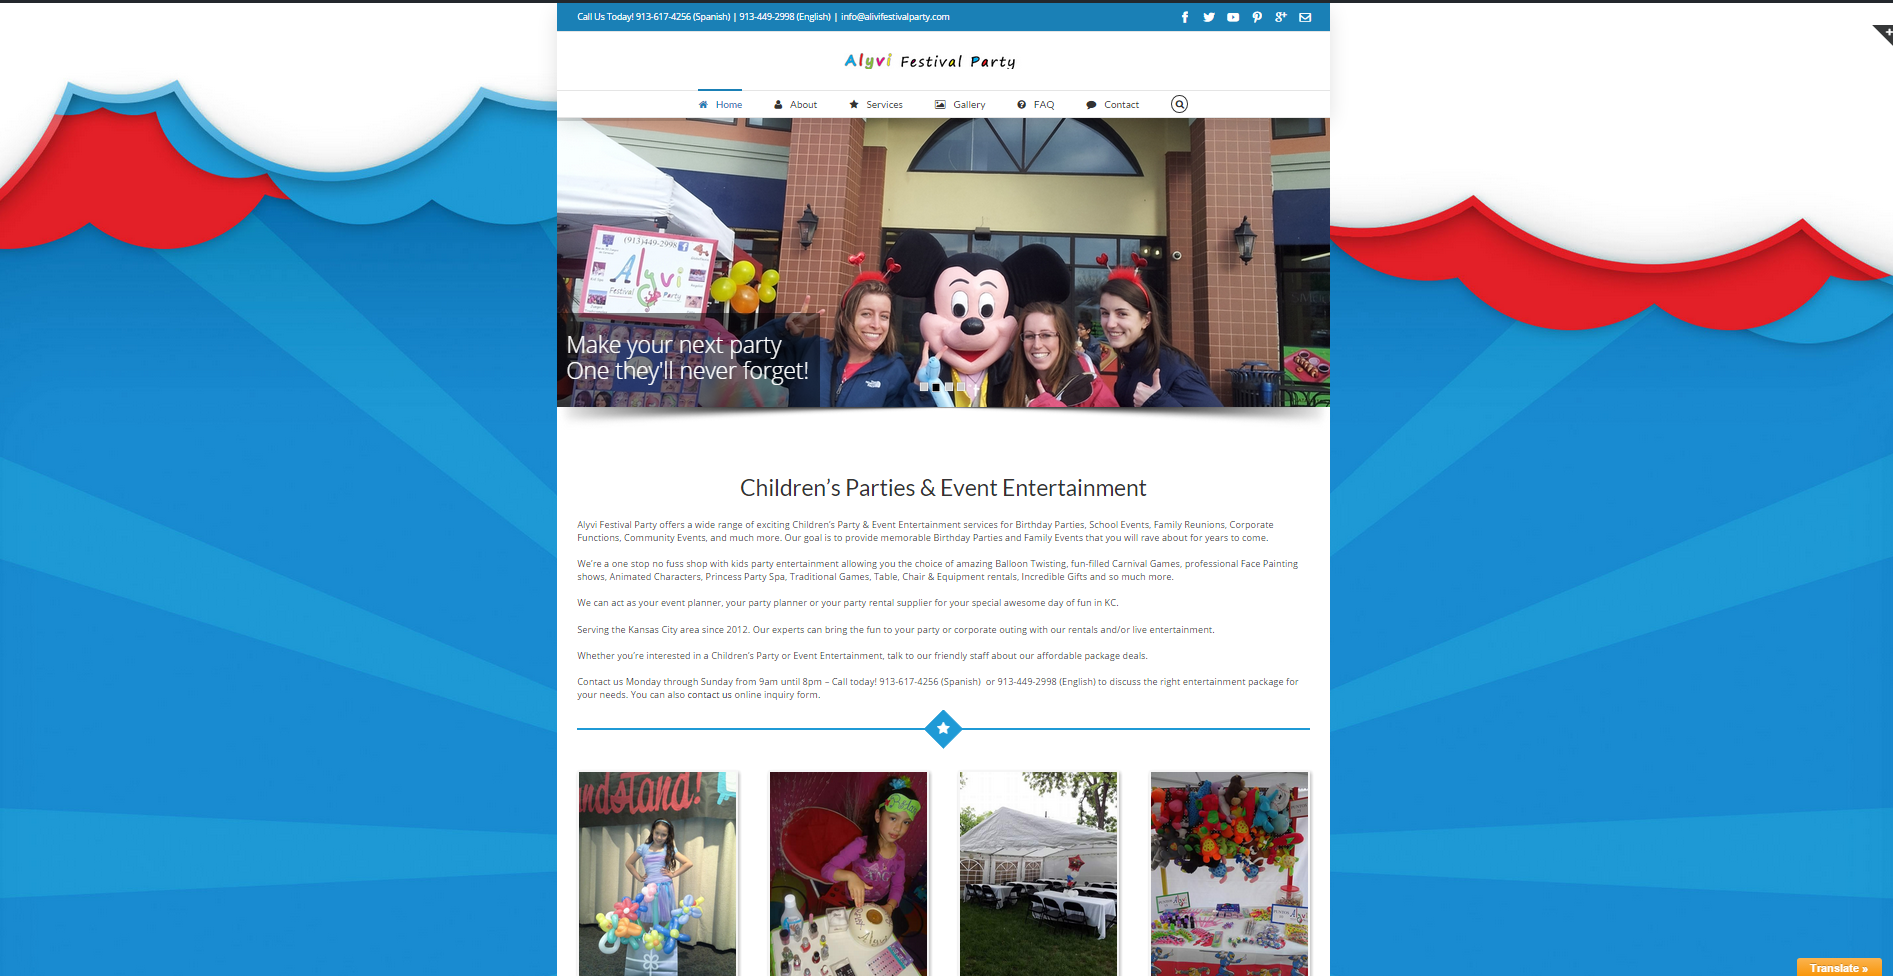 Alyvi Festival Party Children's Events